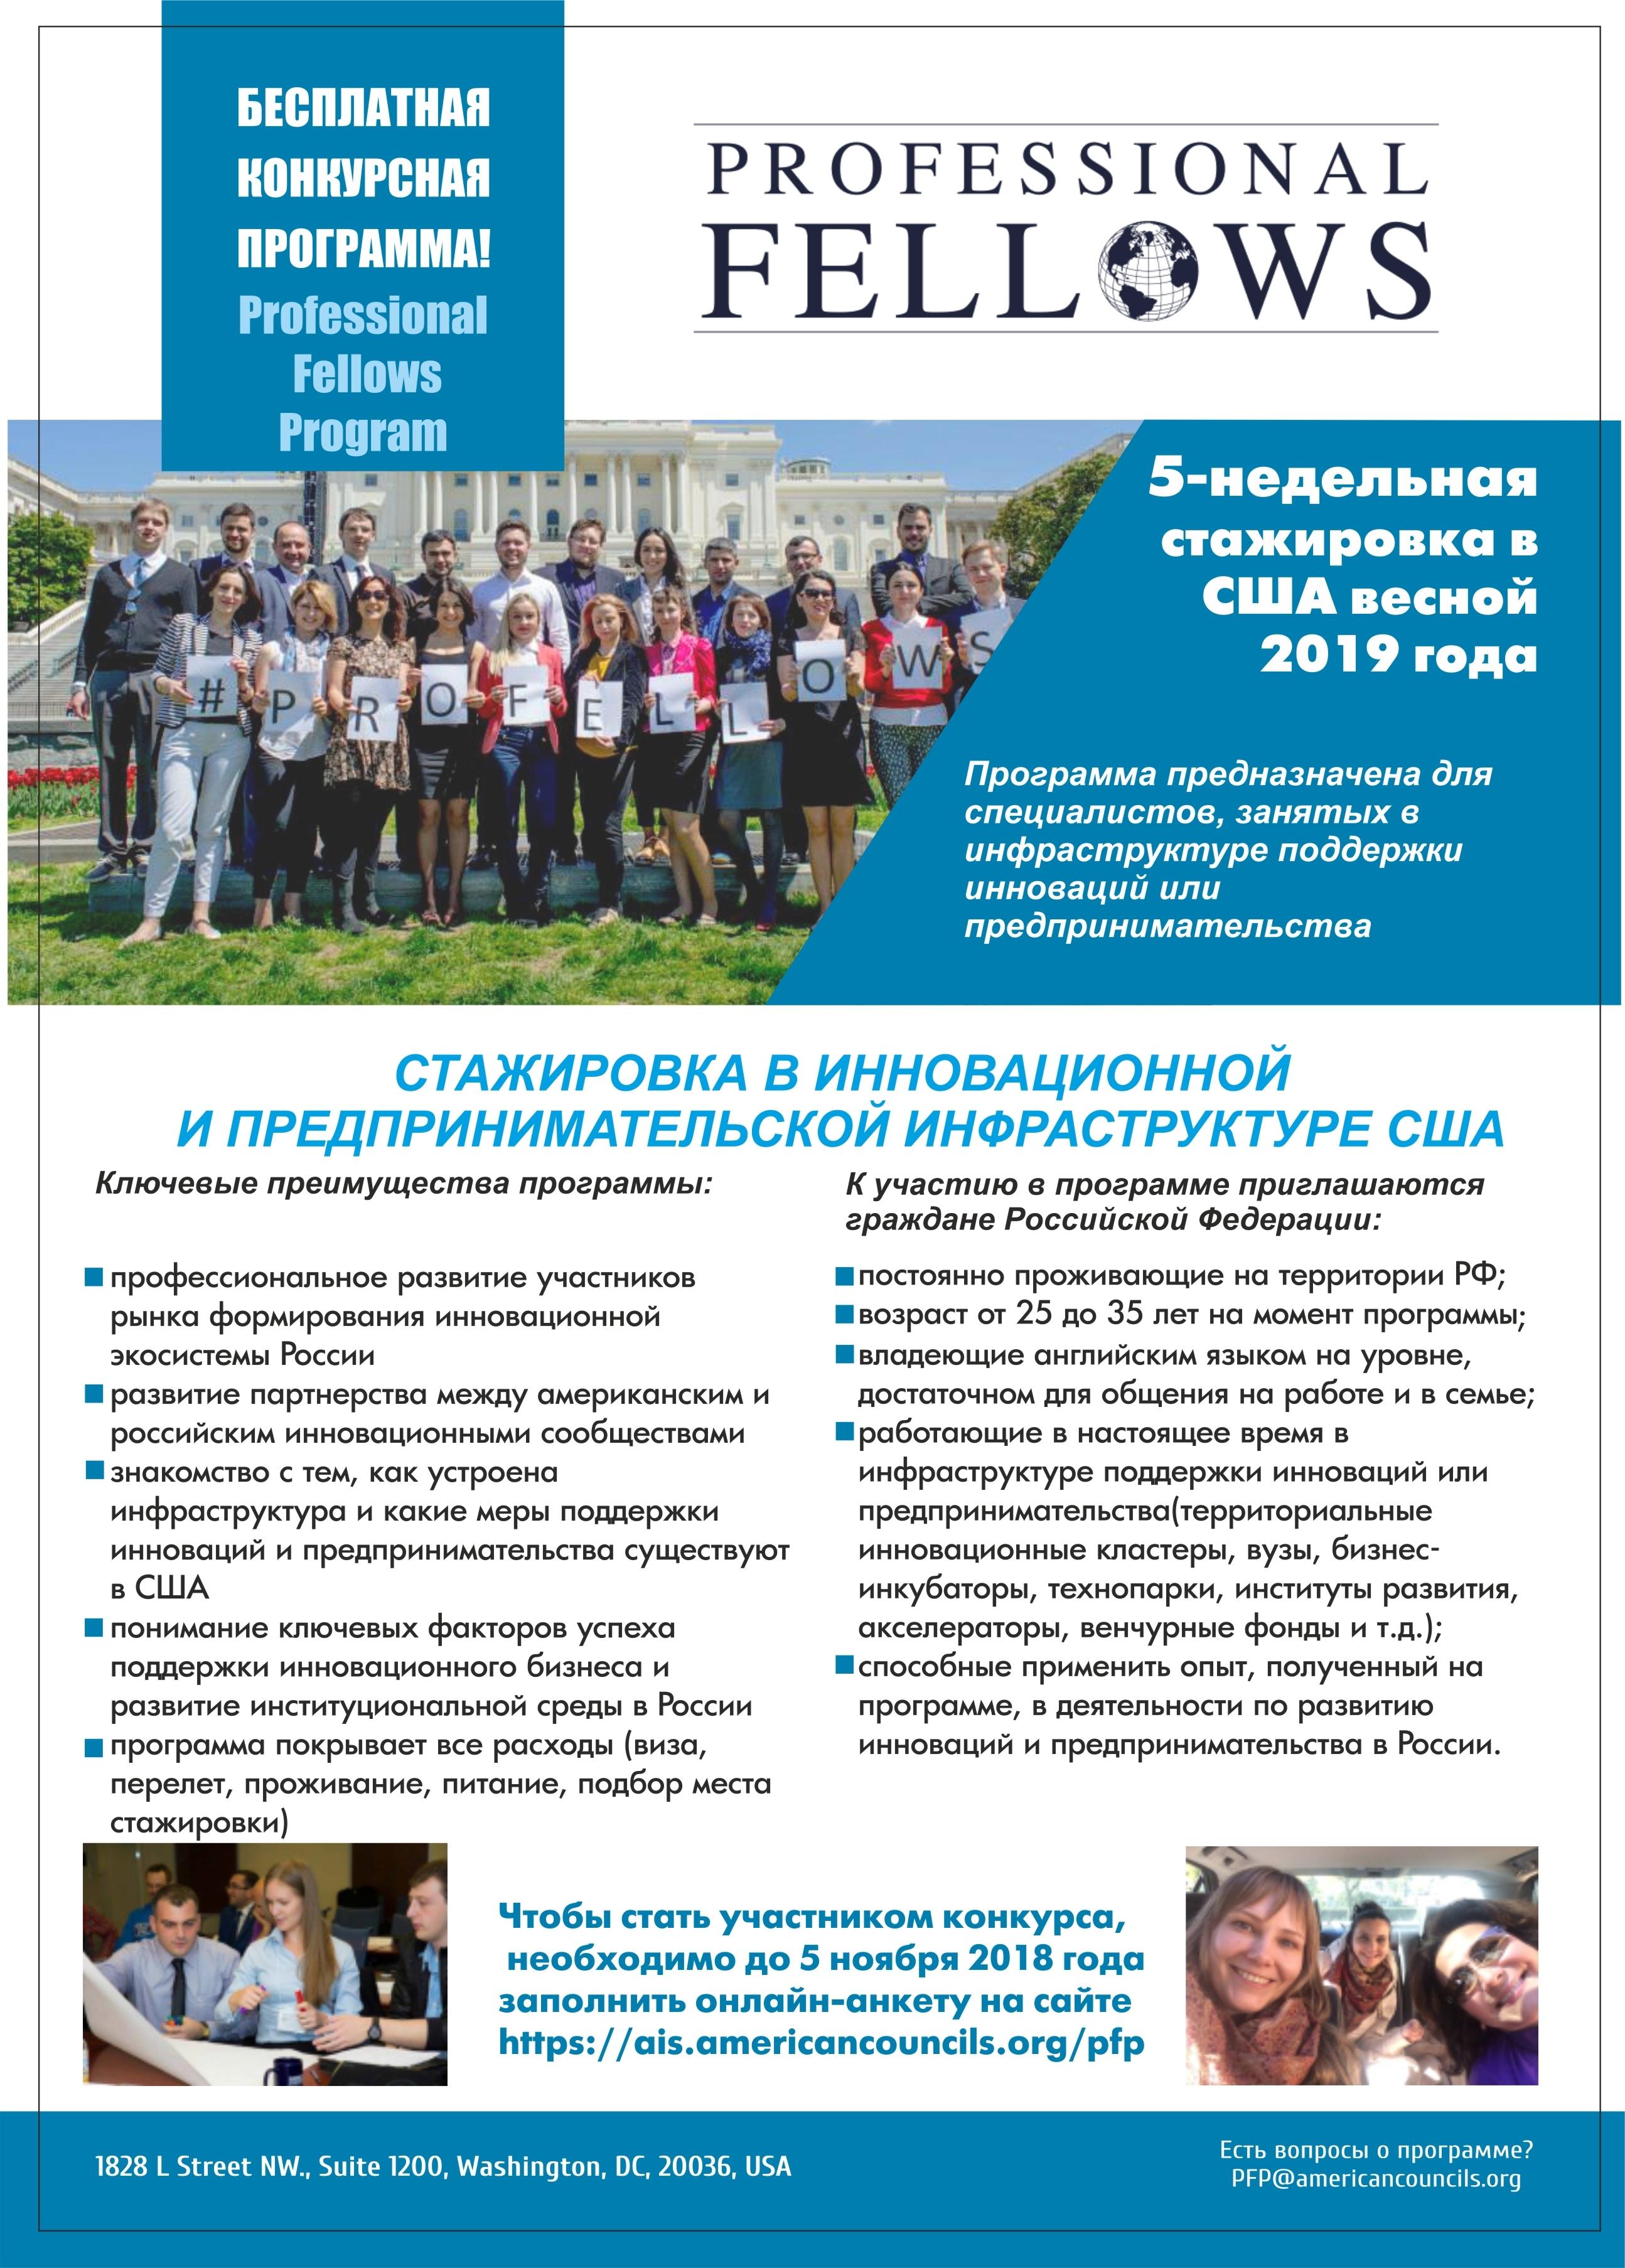 Russian Business Leaders Program Flyer 2018-2019.jpg